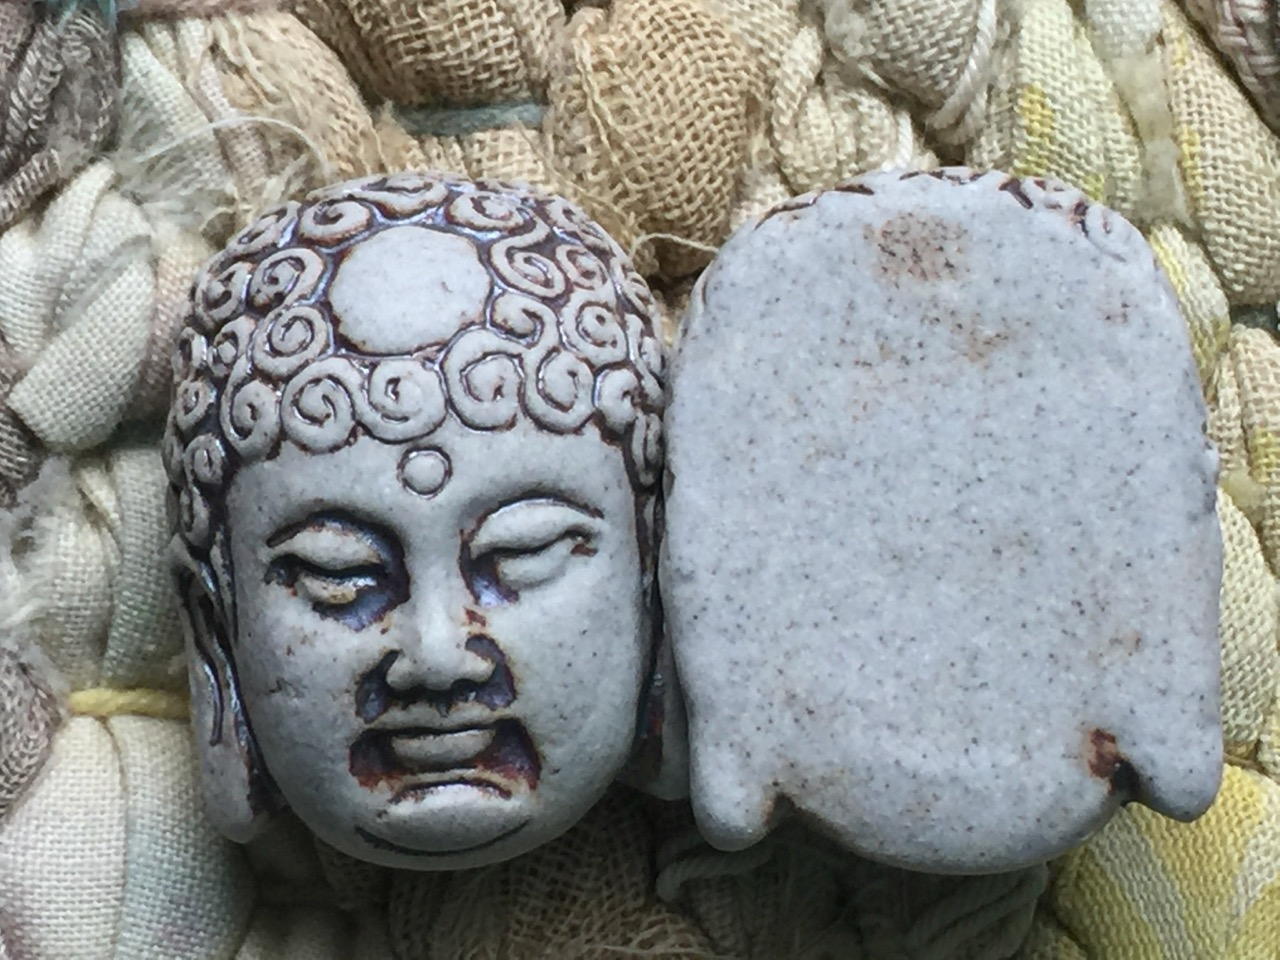 Unglazed Porcelain Ceramic Buddha Head Bead or Pendant